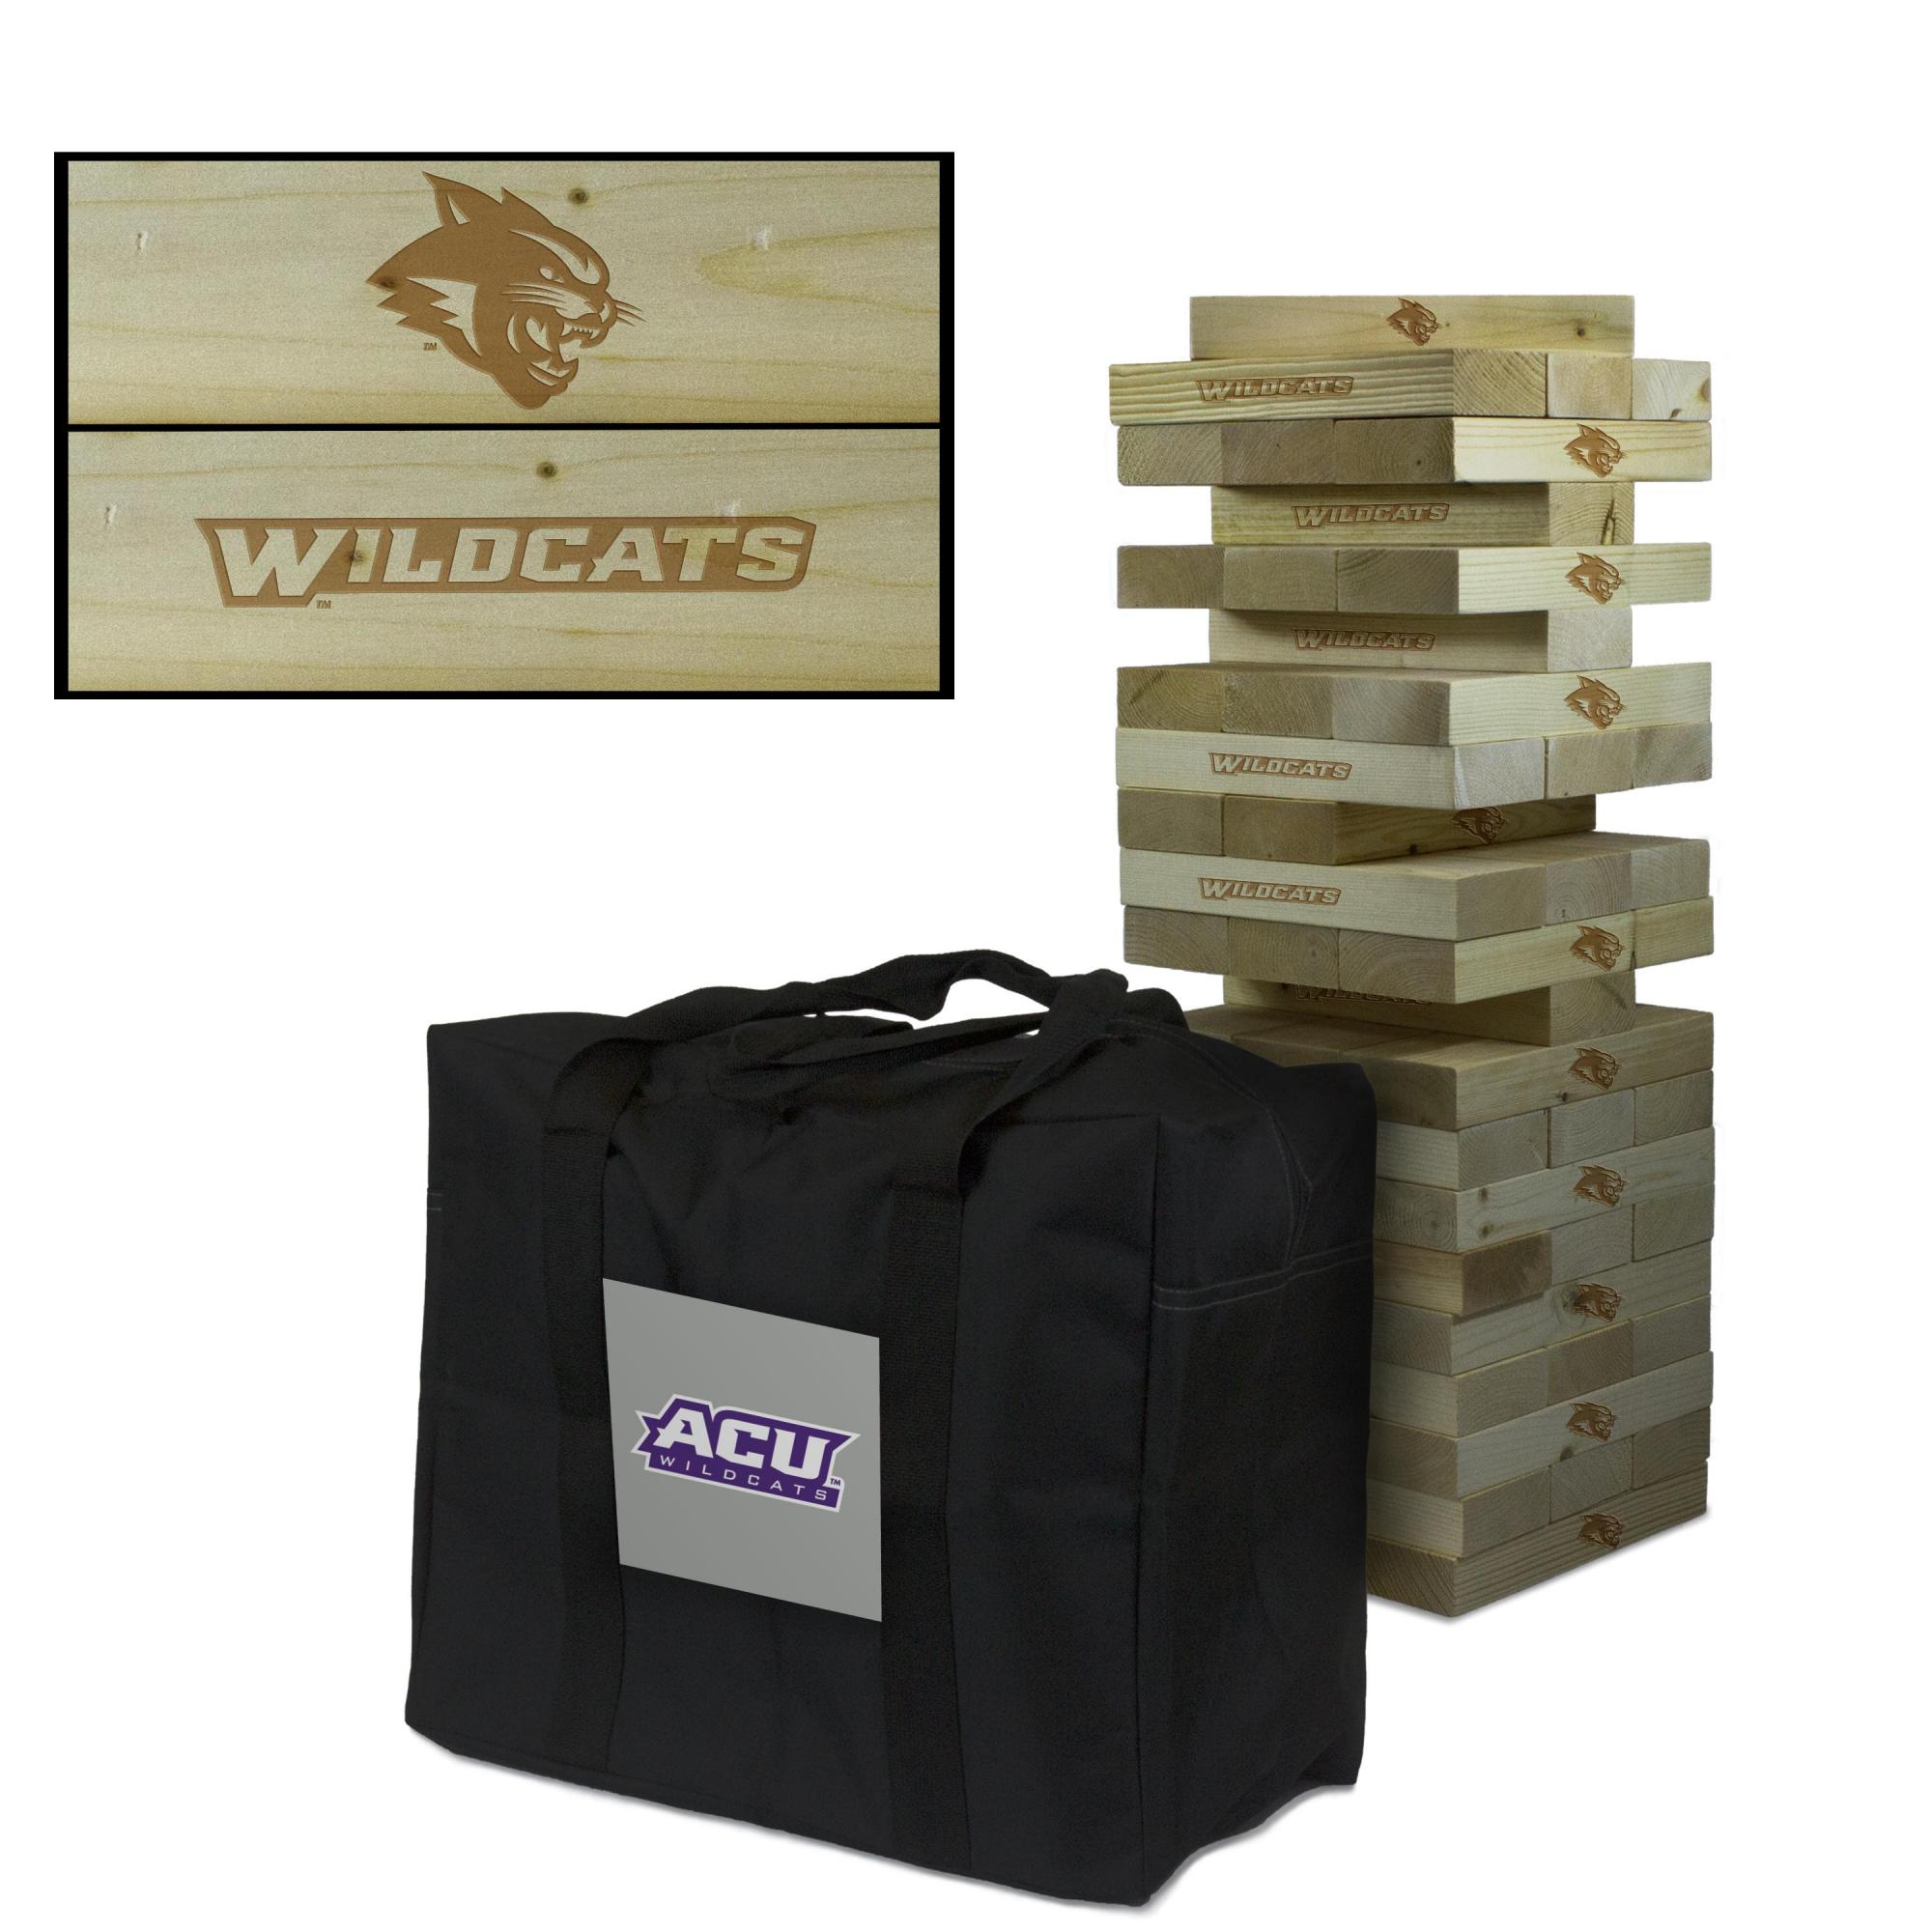 Abilene Christian University Wildcats Giant Wooden Tumble Tower Game